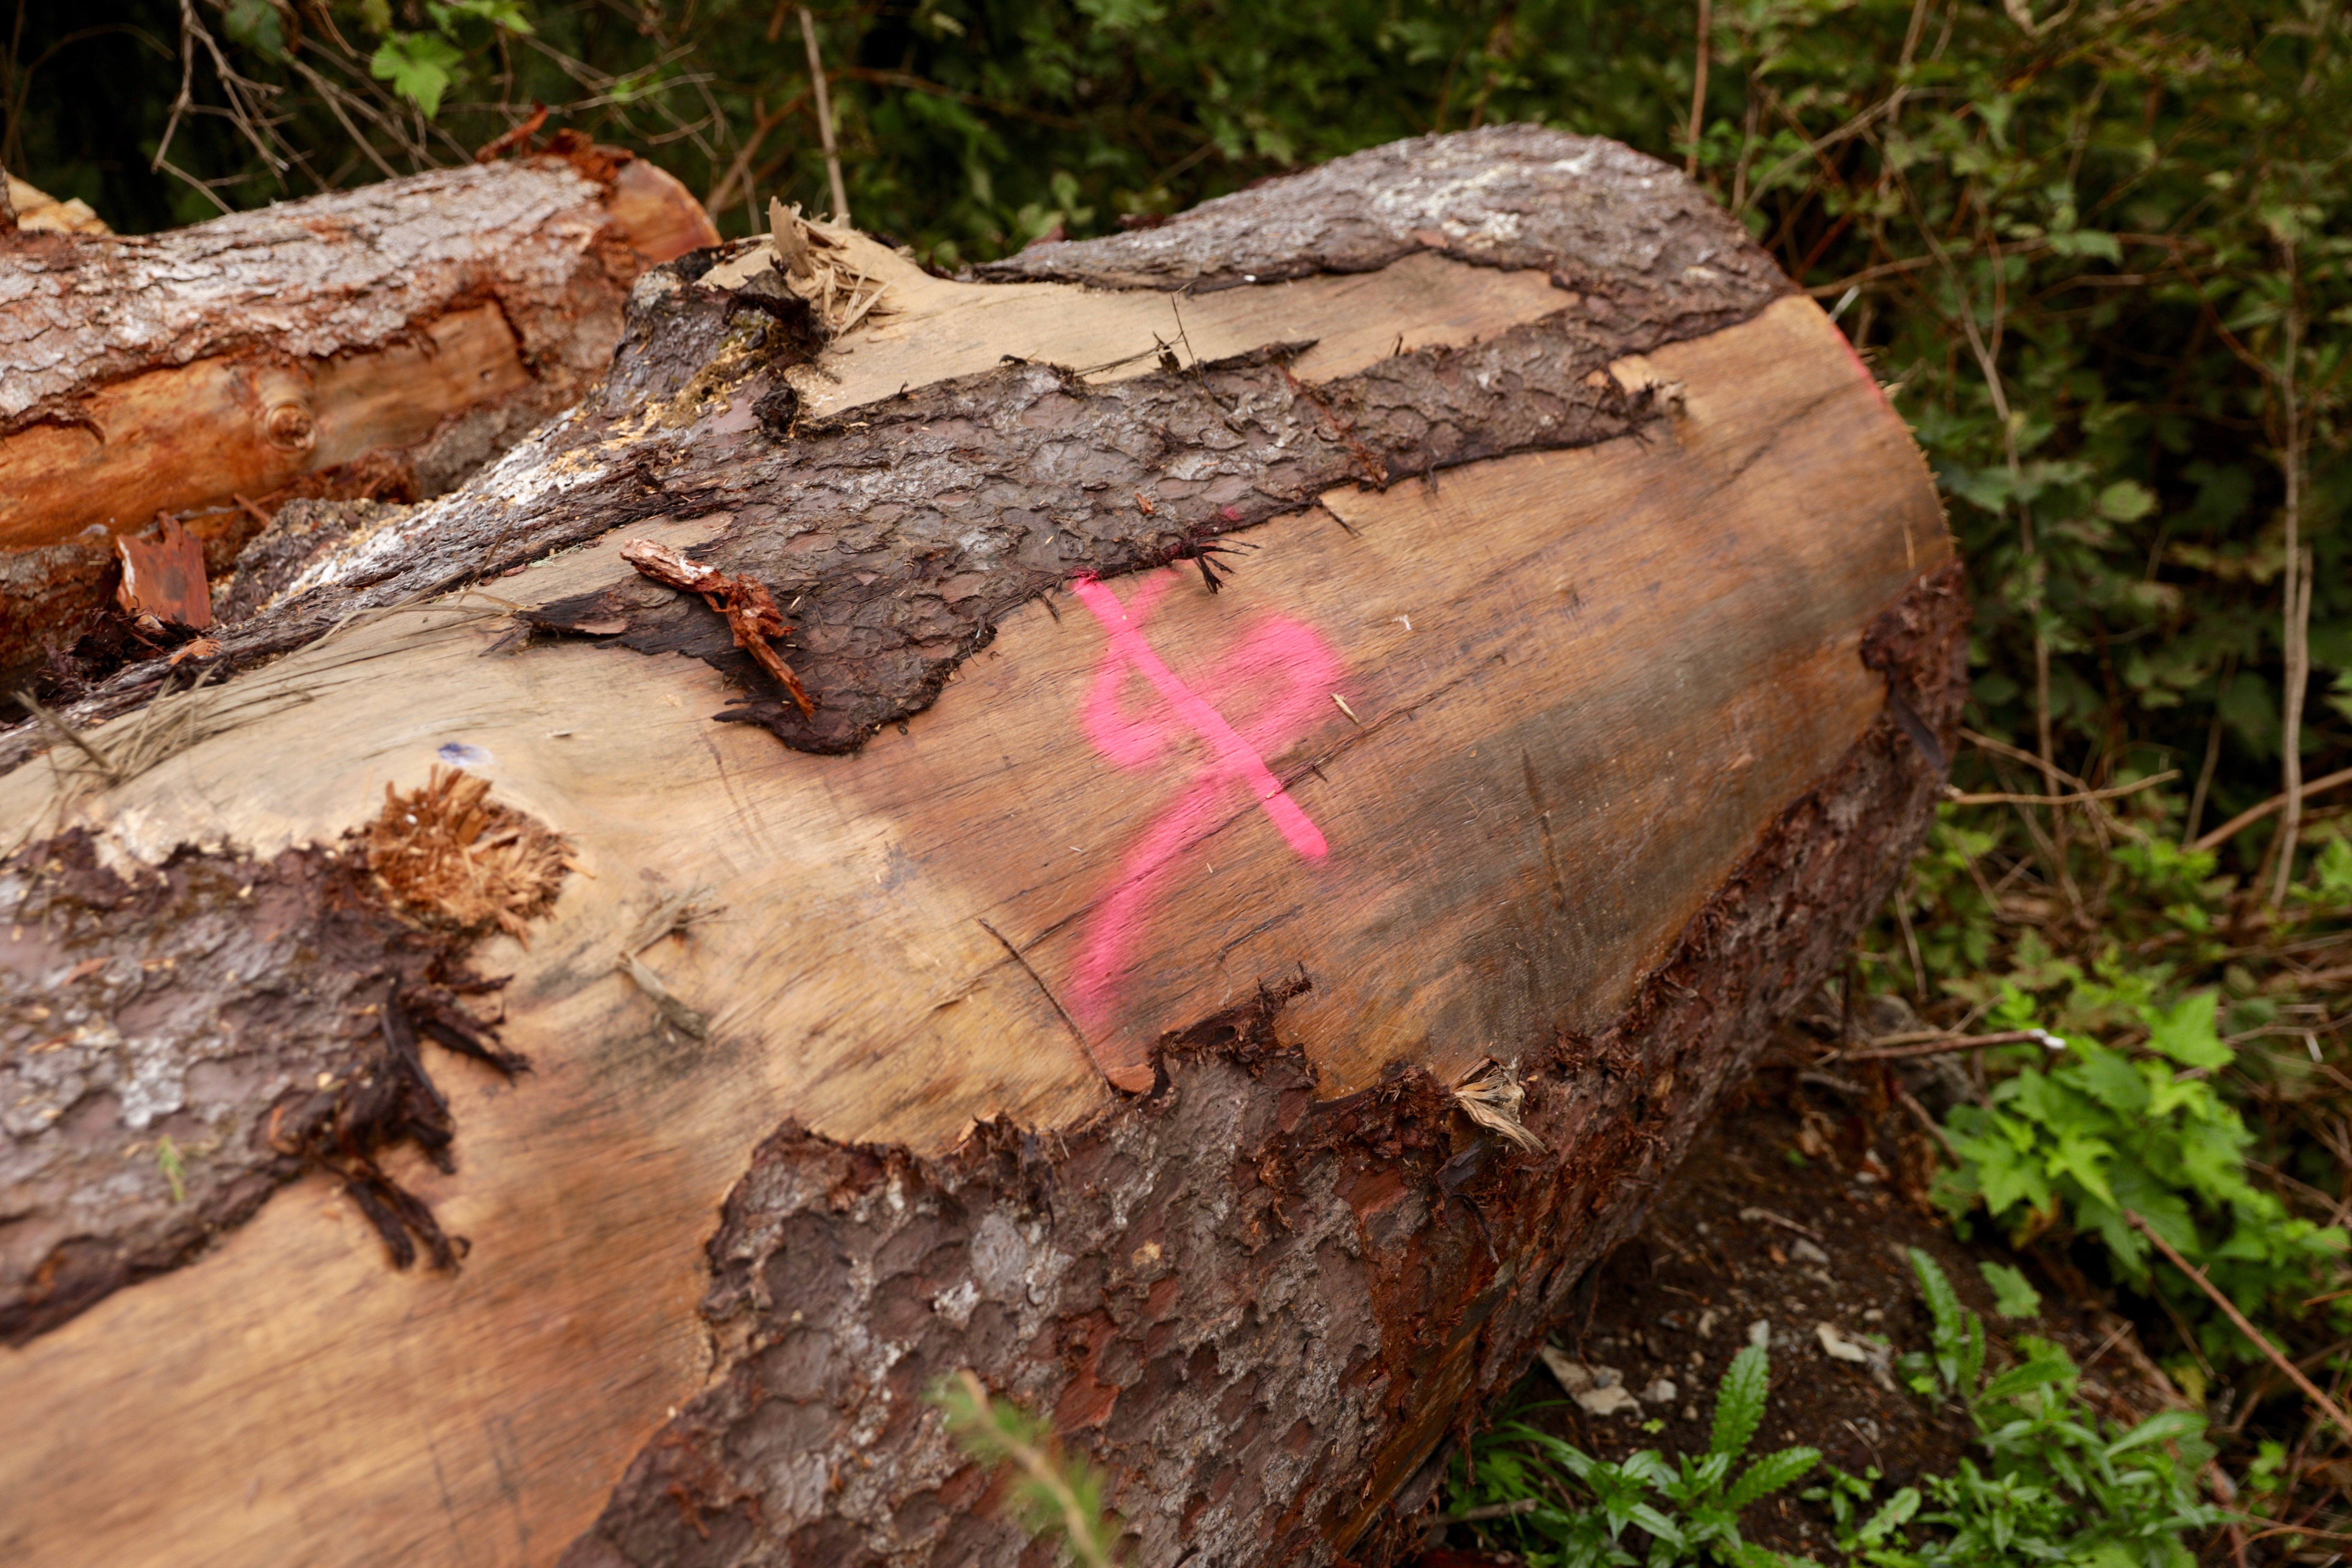 A large, old-growth log by Hadikin Lake on Vancouver Island is spray-painted with what looks like a dollar sign. (Chris Corday/CBC)